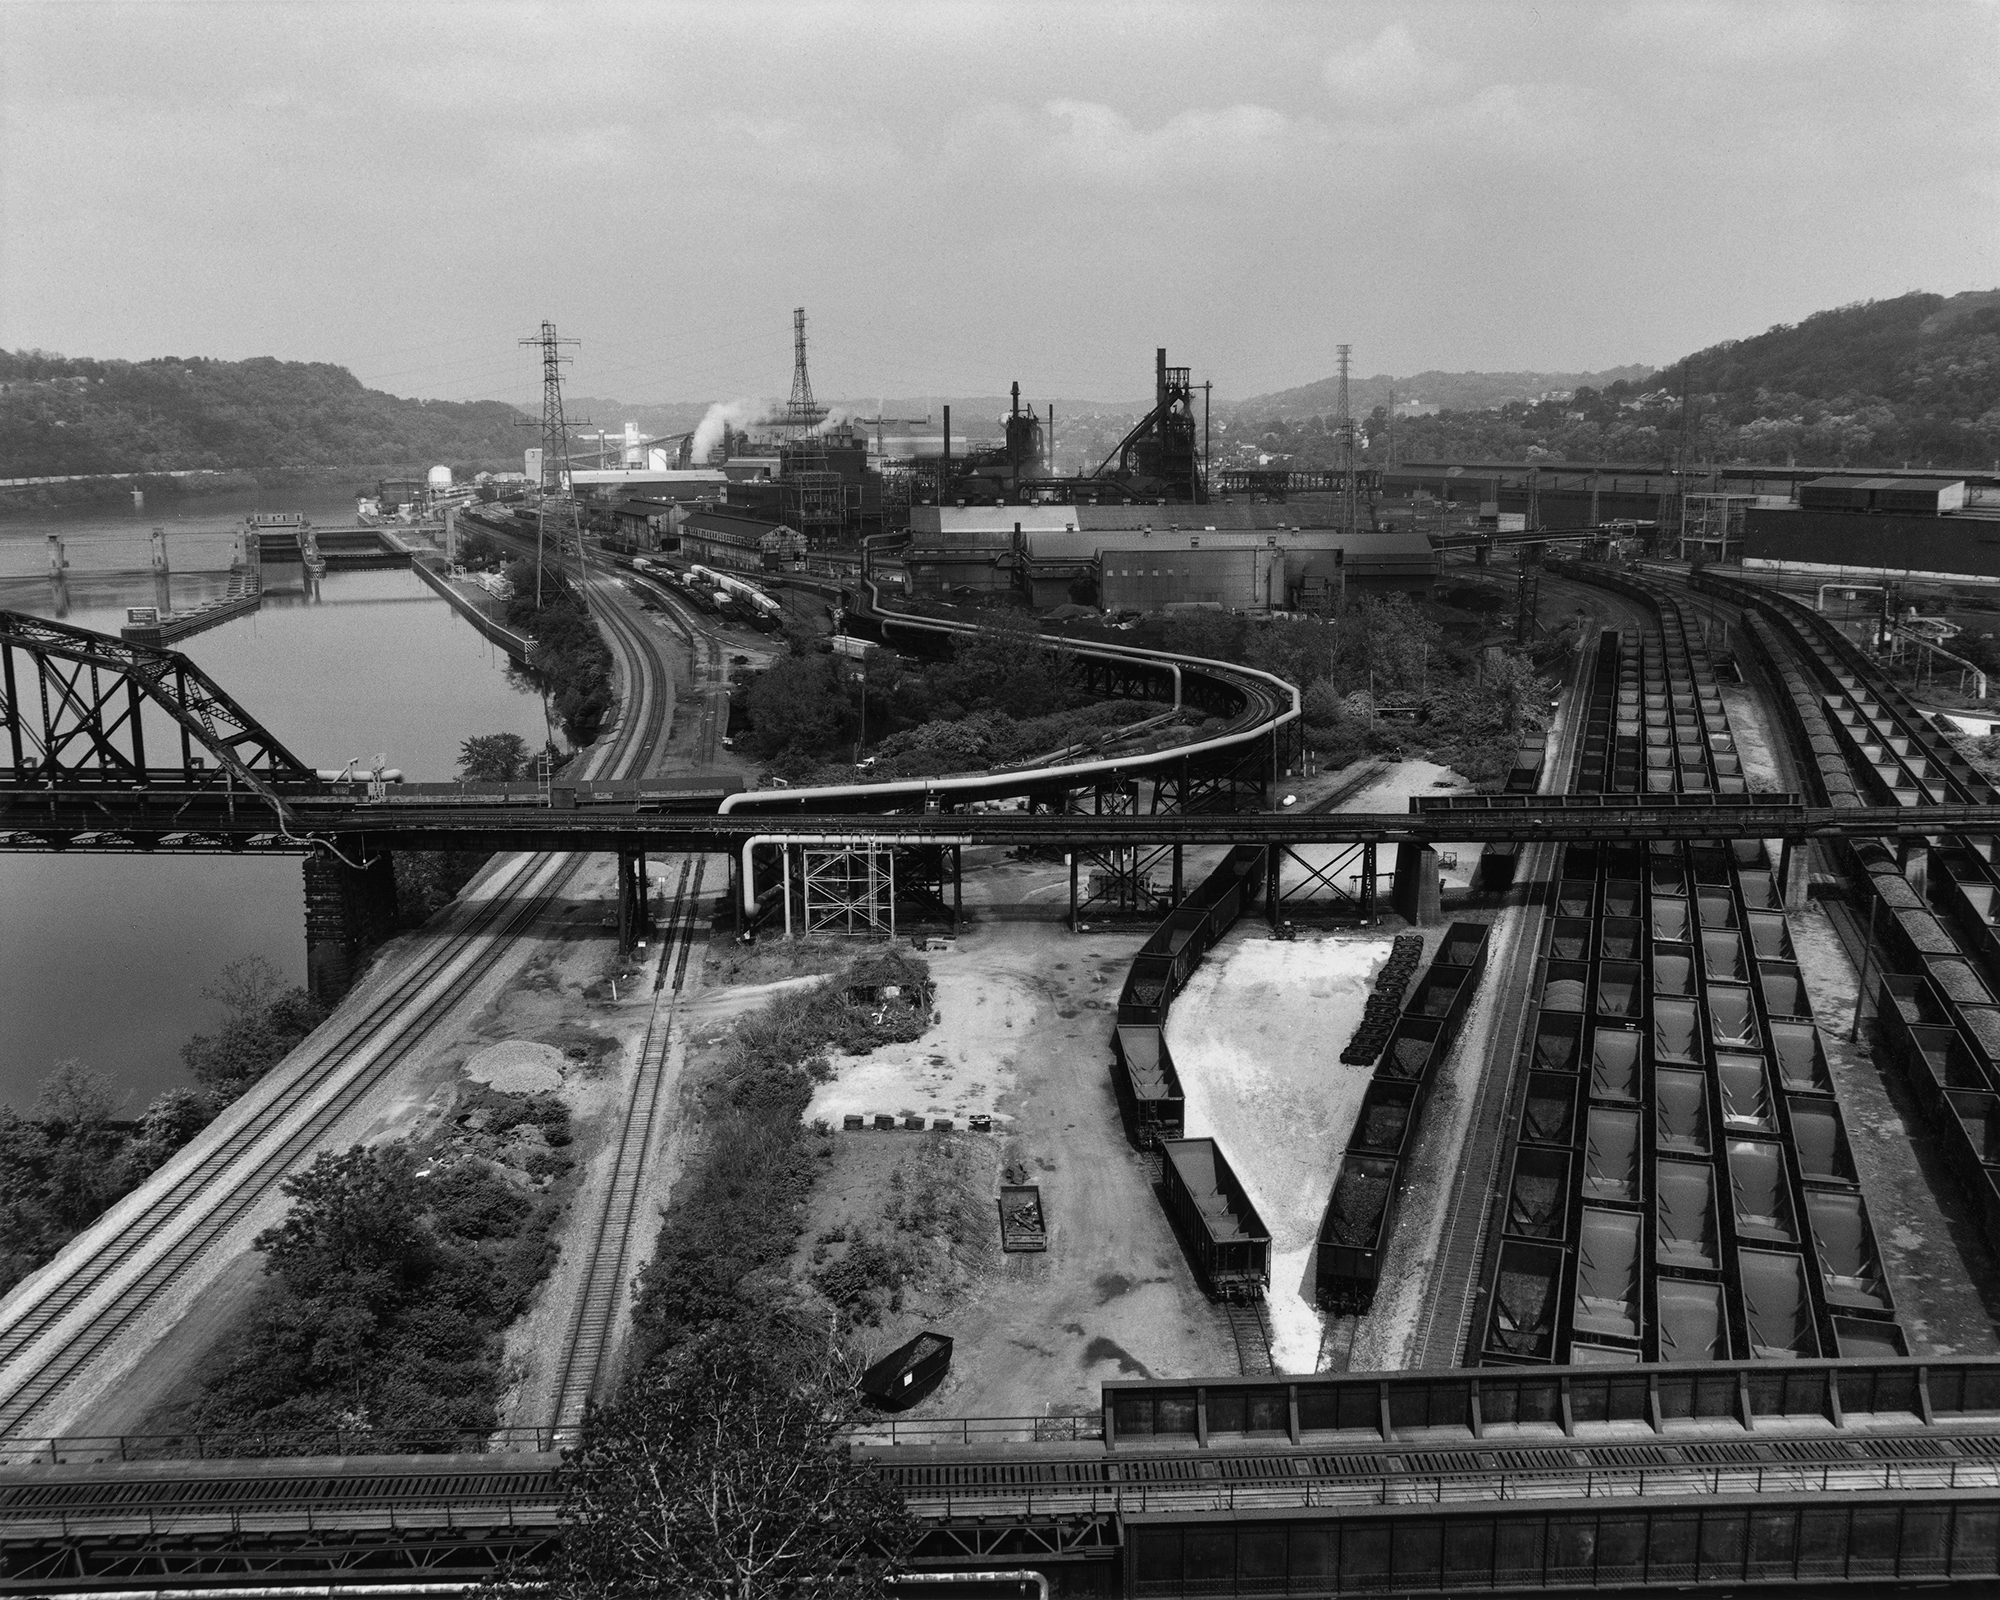 LaToya Ruby Frazier, U.S.S. Edgar Thomson Steel Works and Monongahela River, 2013, from The Notion of Family (Aperture, 2014)